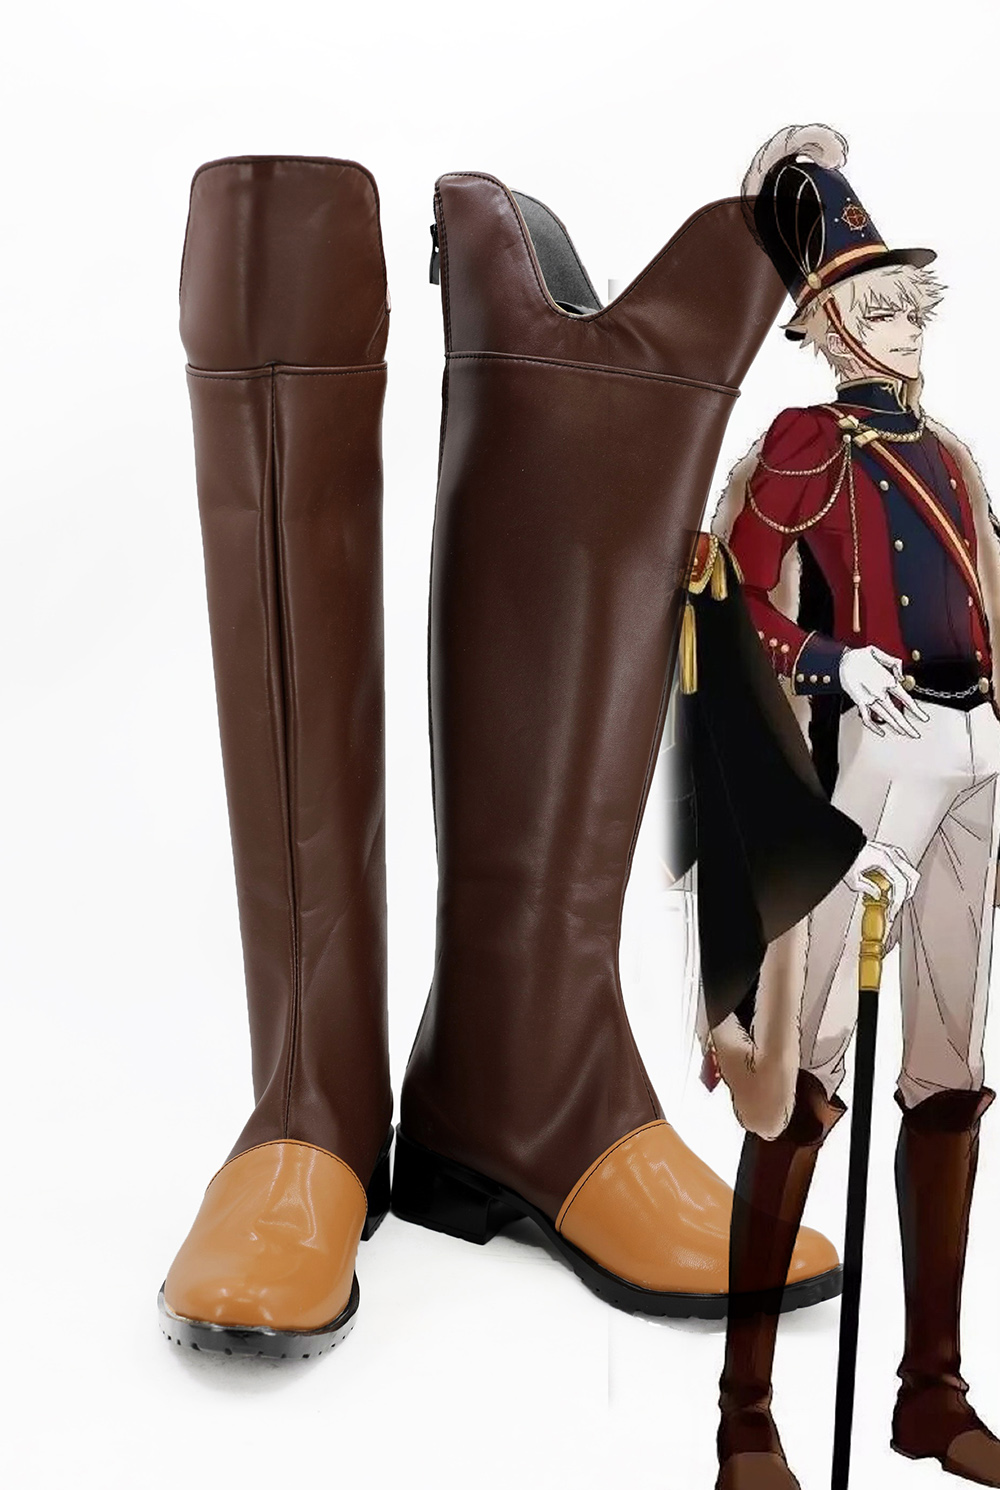 Boku no Hero Academia My Hero Academia Bakugou Katsuki Brown Cosplay Boots Shoes Custom Made